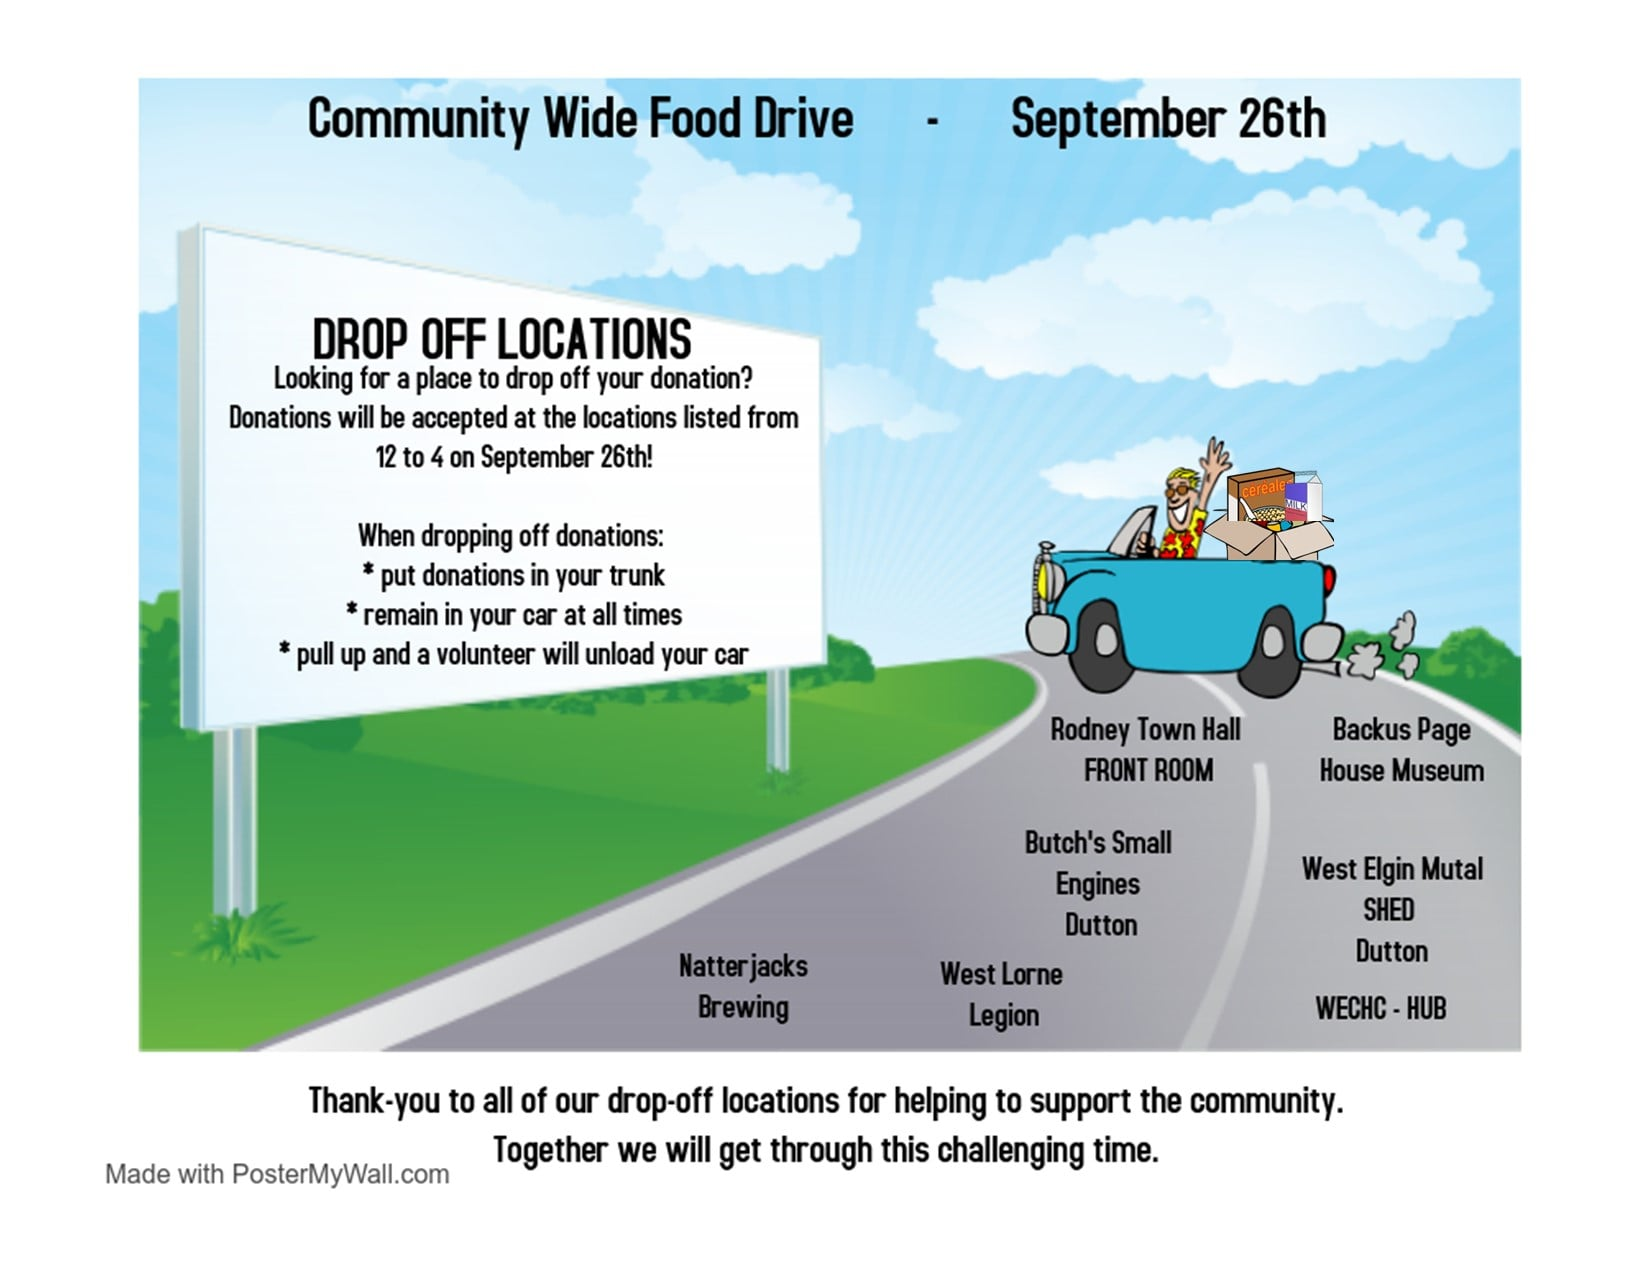 food drive drop off locations